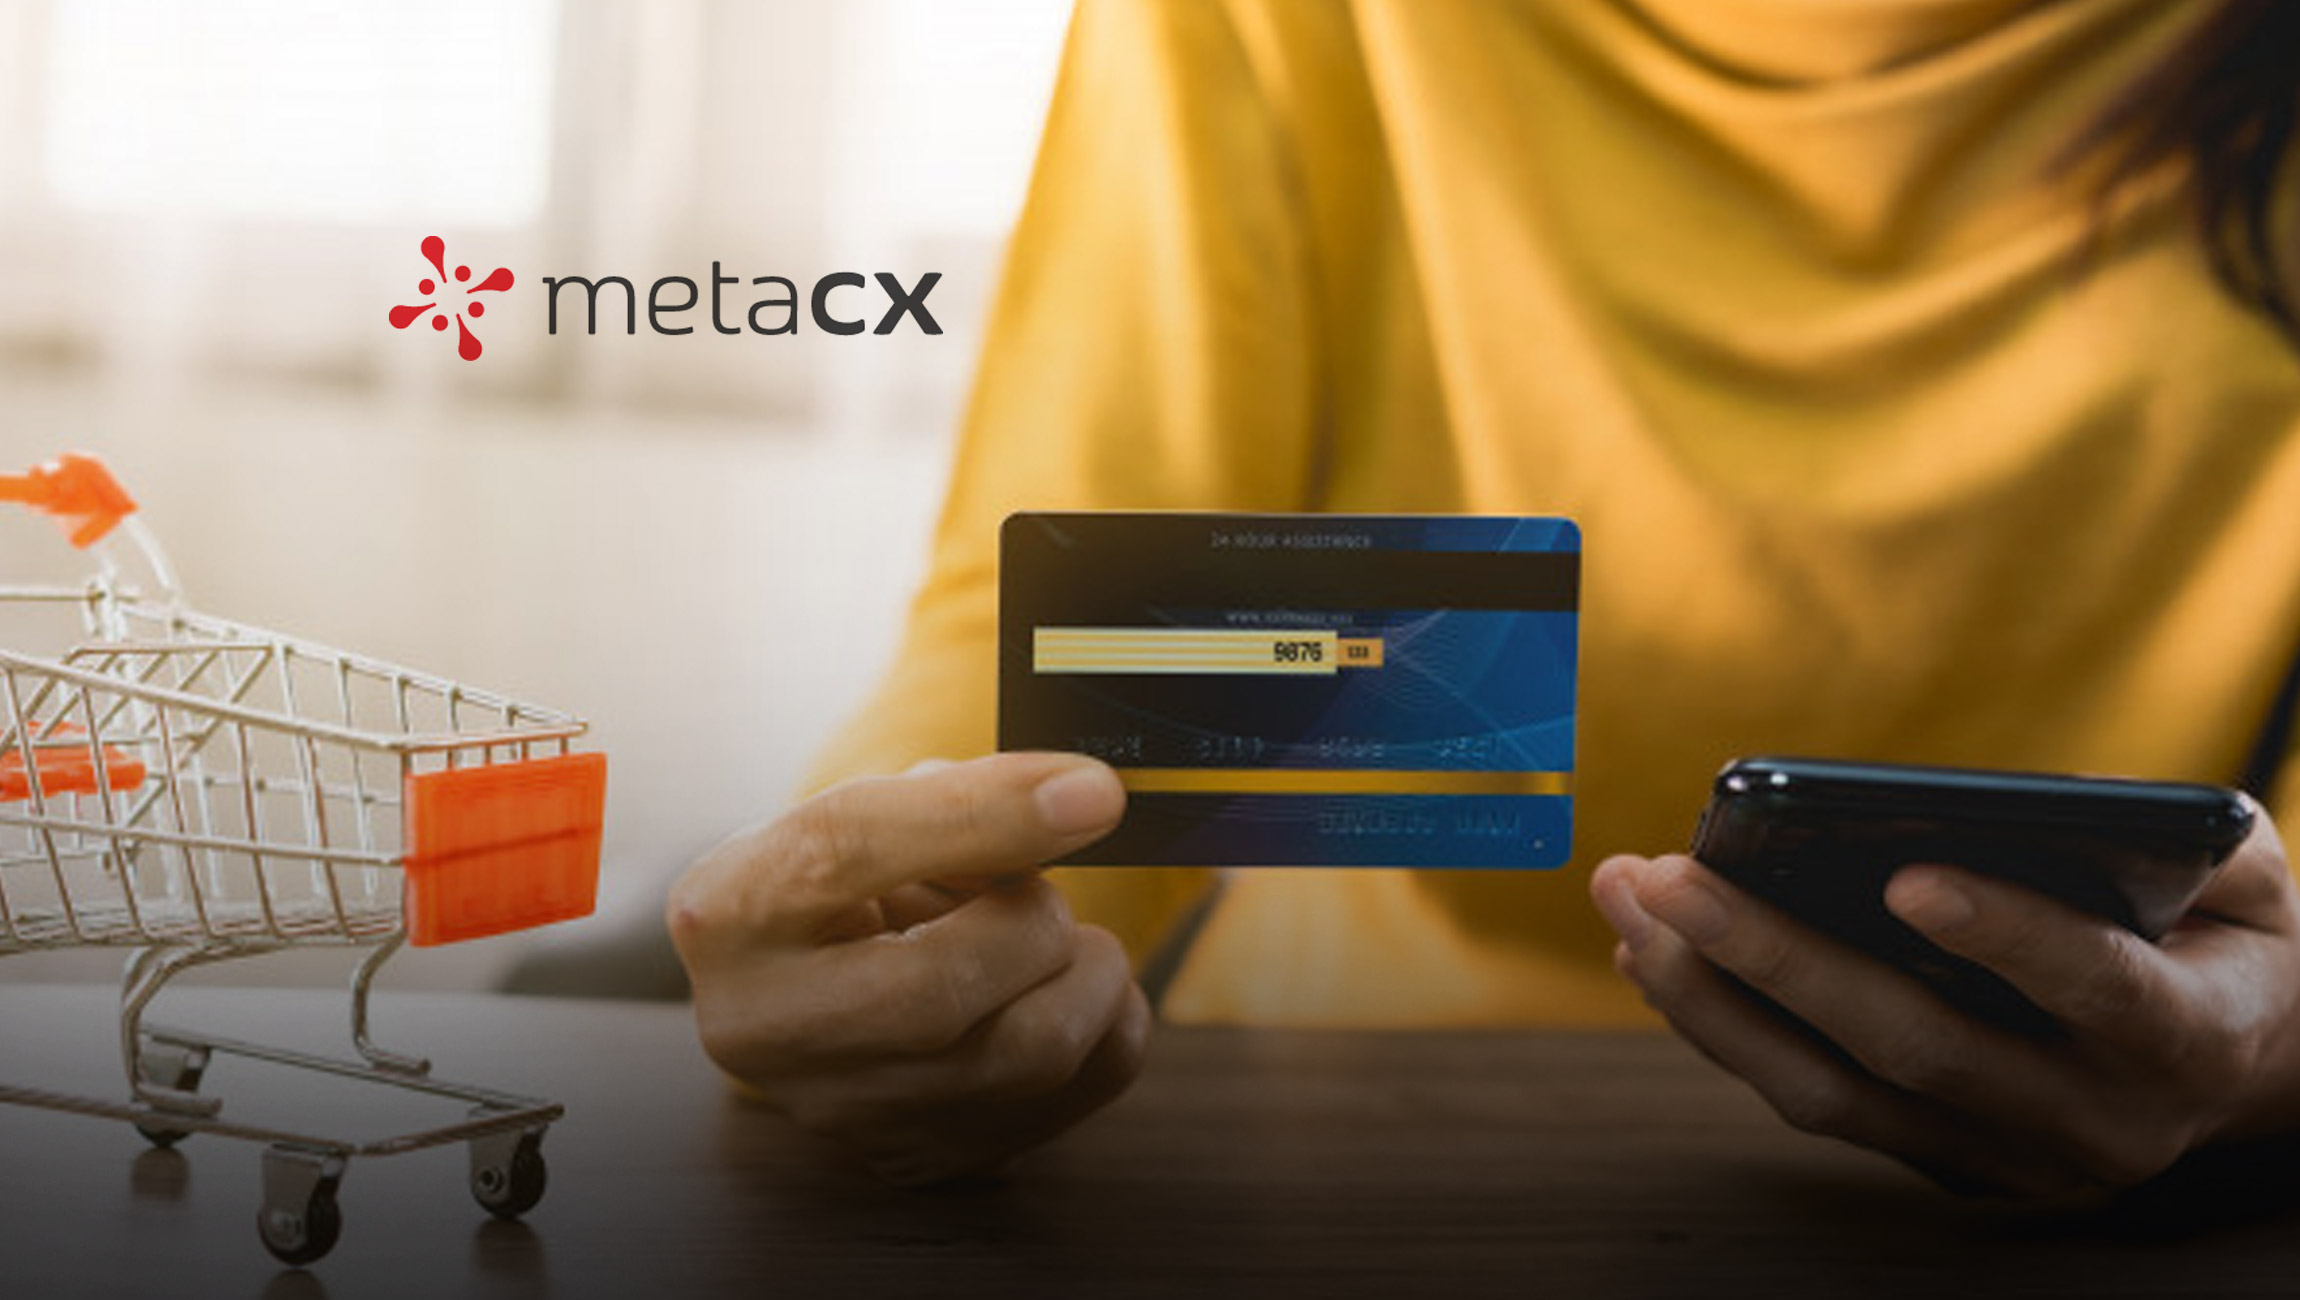 MetaCX Launches B2B Customer Lifecycle Platform to Transform Supplier/Buyer Relationships for a Performance Economy